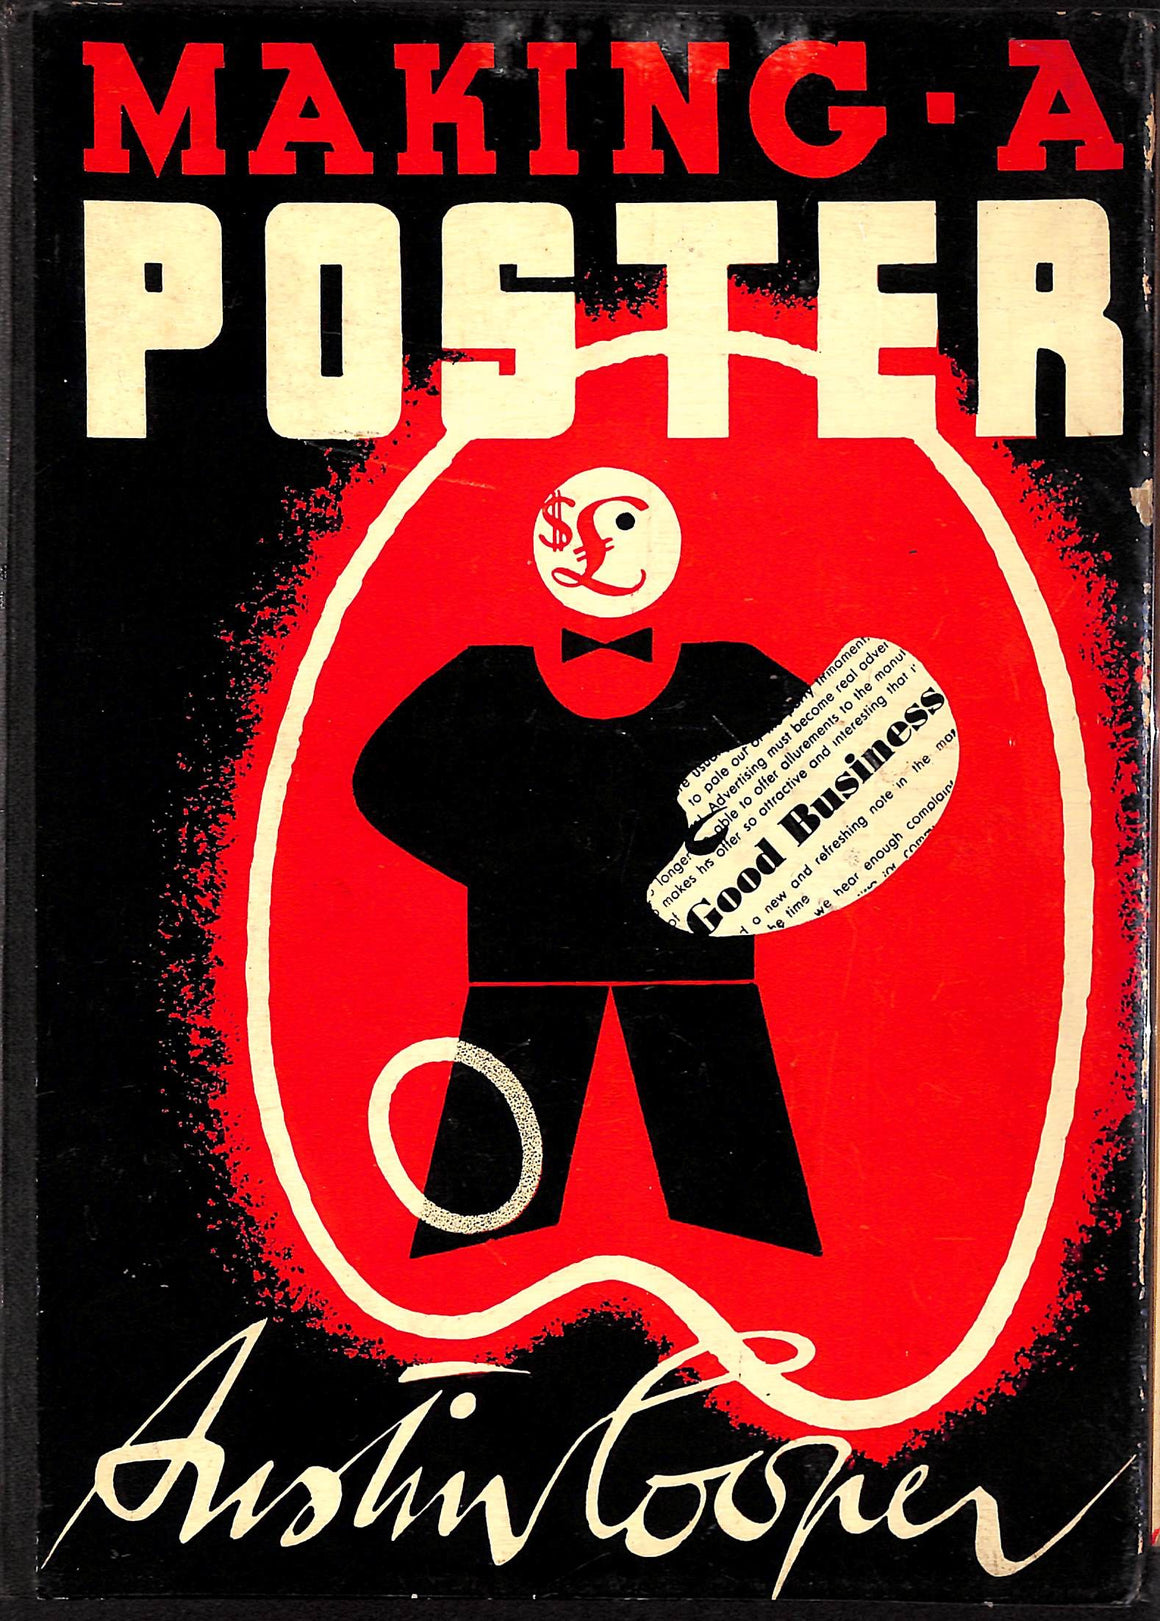 'Making a Poster' 1938 by Austin Cooper